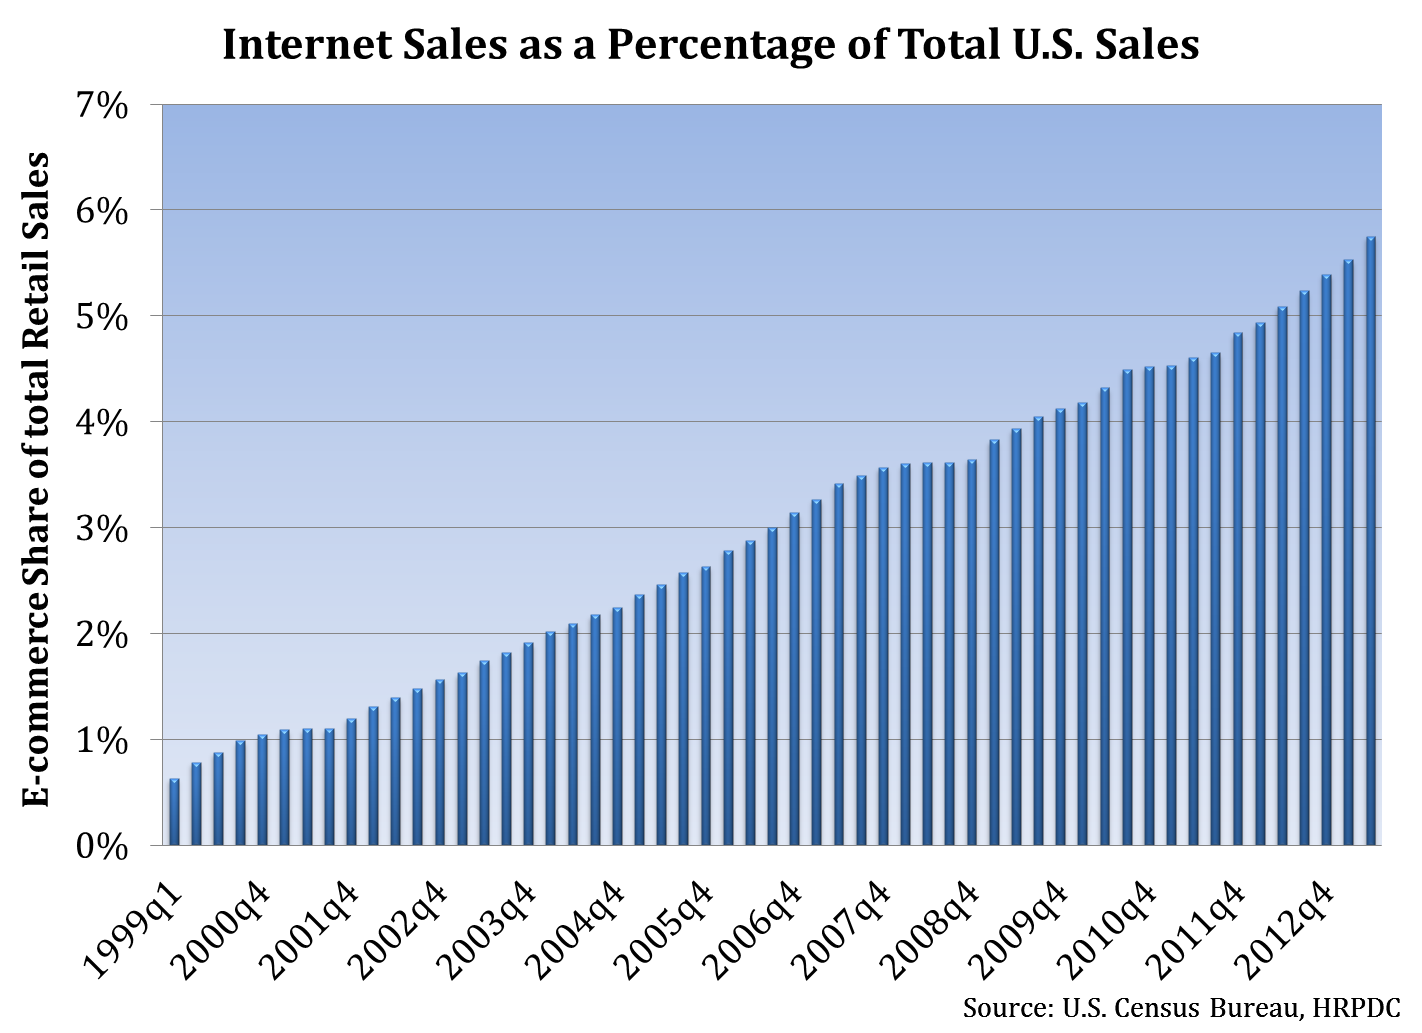 Internet Sales as a Percentage of Total U.S. Sales